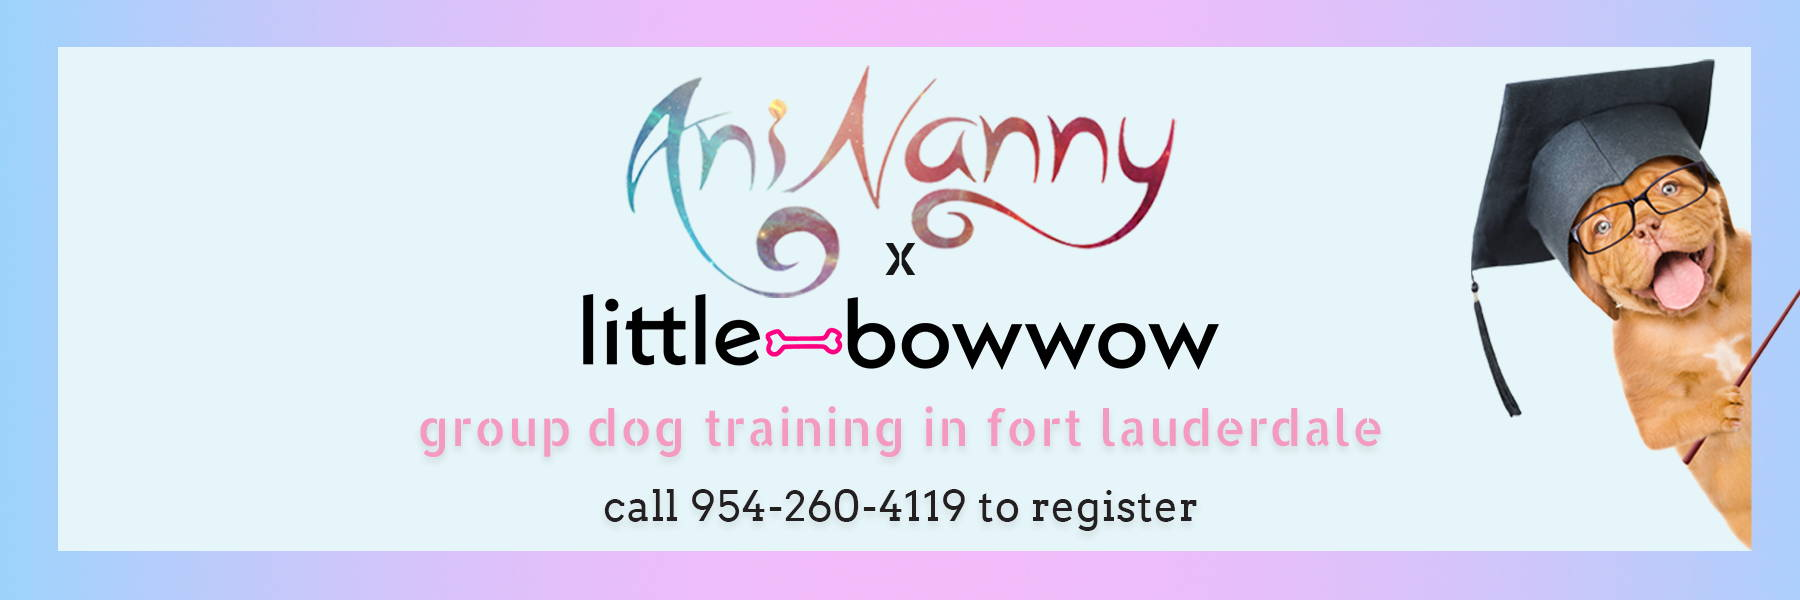 Aninanny and Little Bow Wow are offering group dog training in Fort Lauderdale.  Call 954-260-4119 to register.